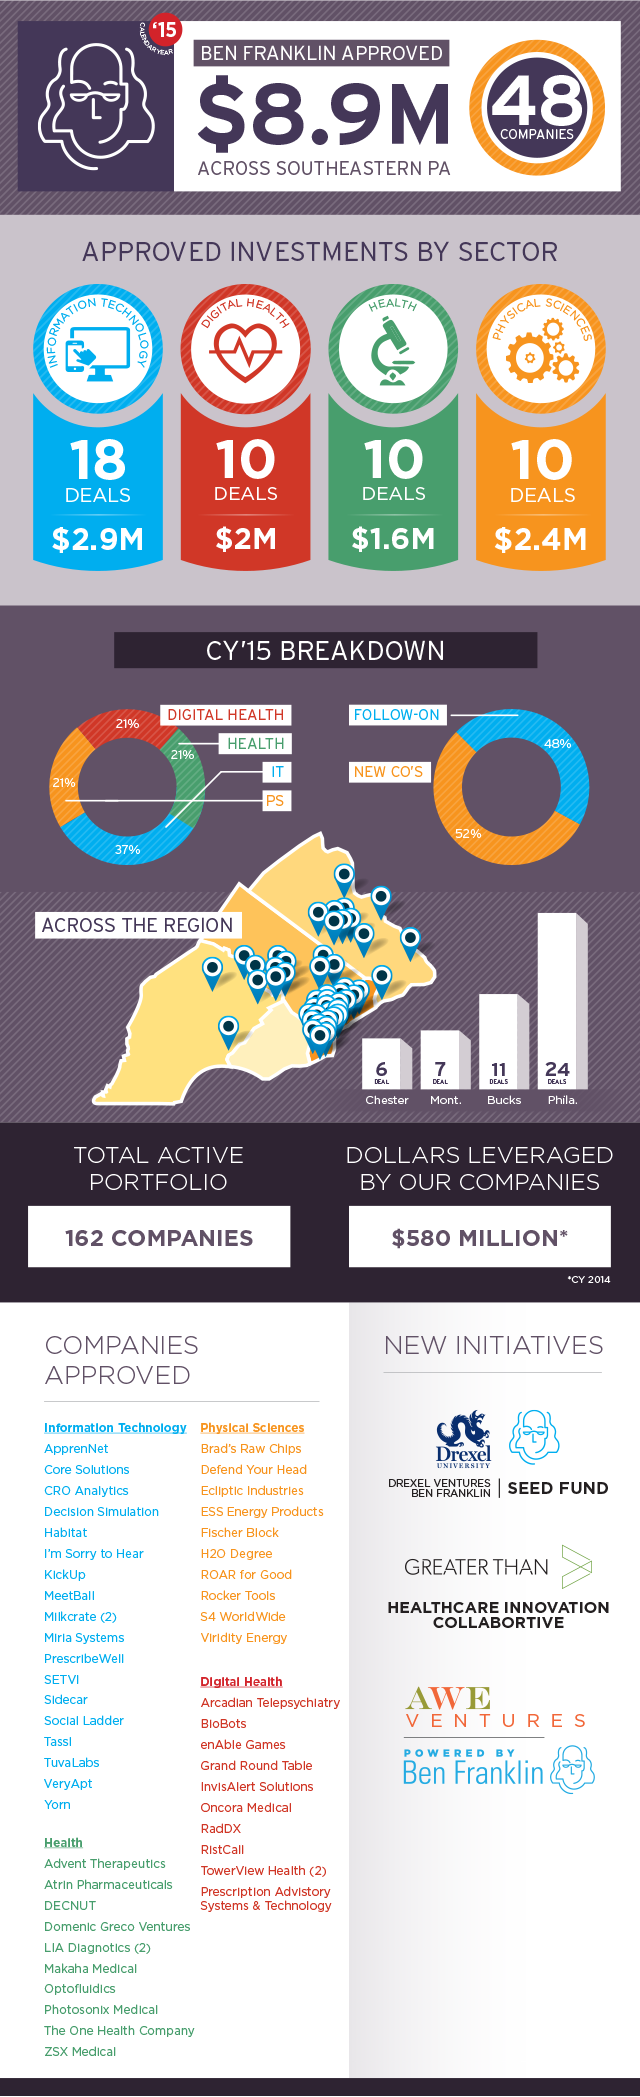 CY15-Wrap-Up-Ben-Franklin-Invests-Infographic